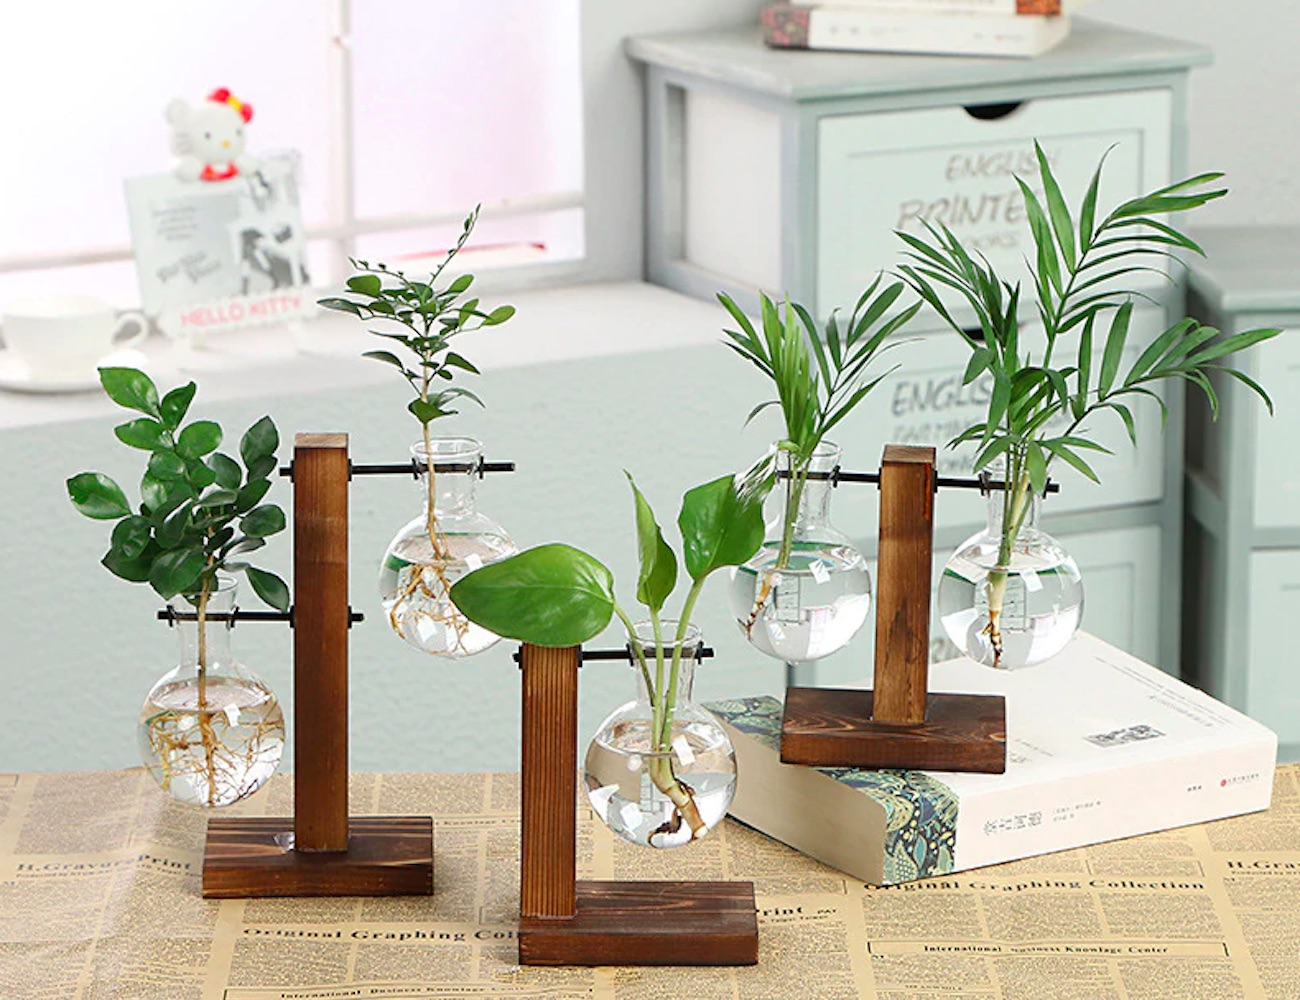 Balancing Glass Hydroponic Plant Vases give a transparent view of growing plants